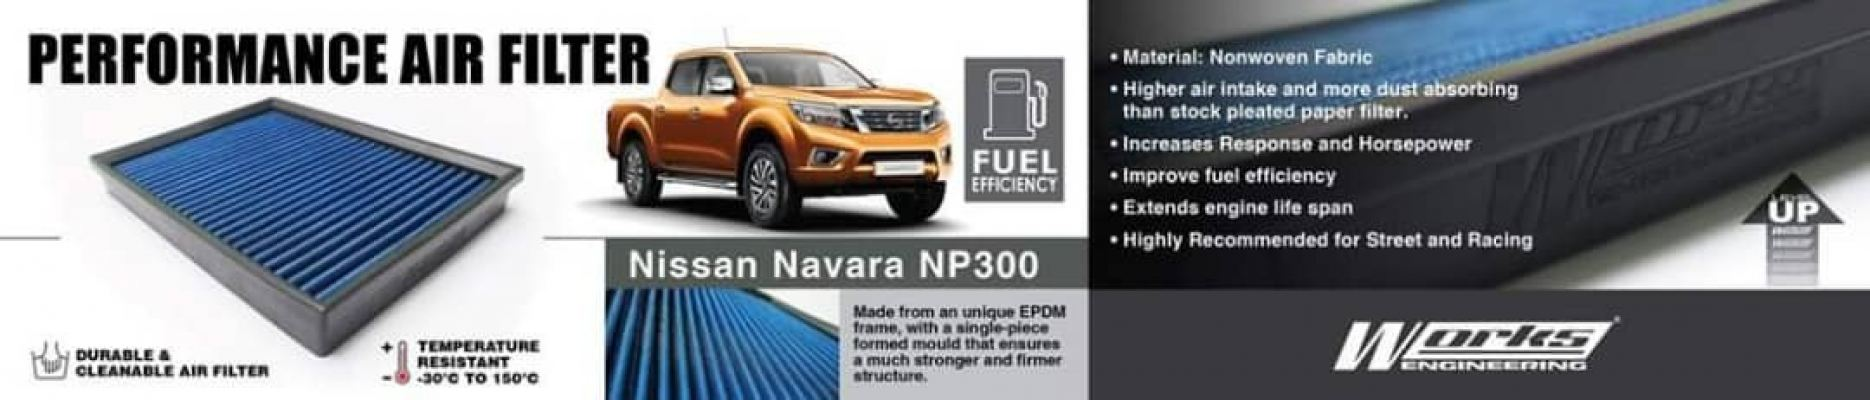 Nissan Navara NP300 Works engineering air filter